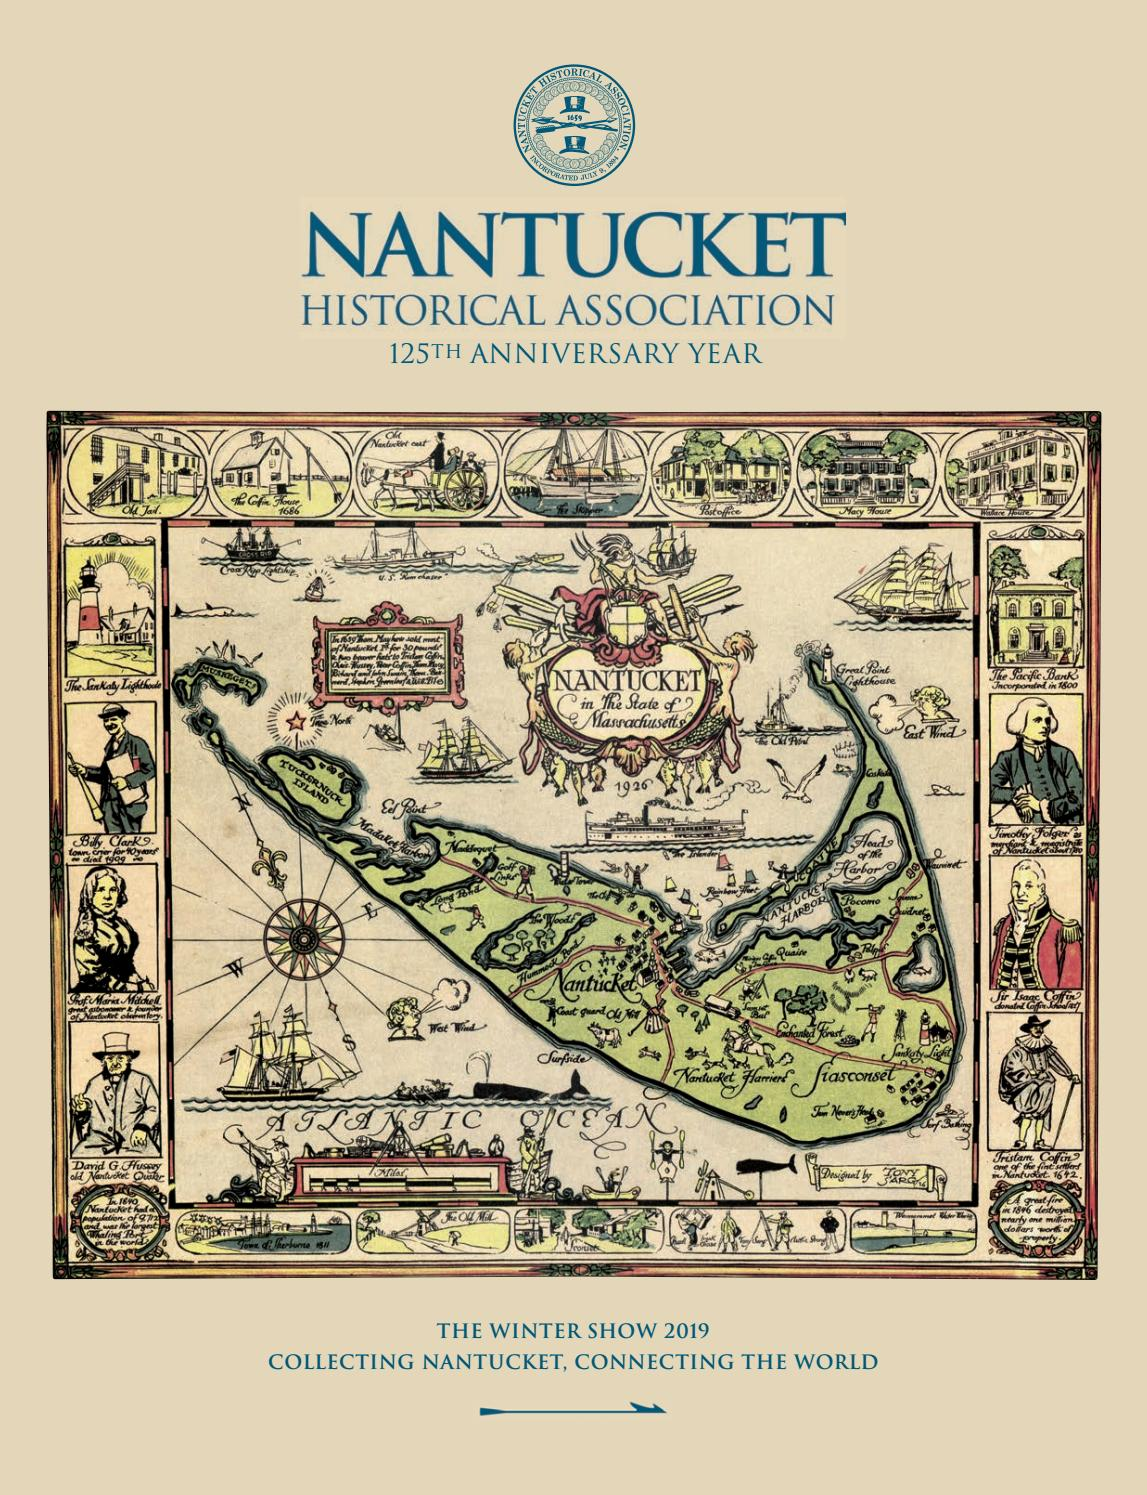 THE WINTER SHOW 2019 COLLECTING NANTUCKET, CONNECTING THE